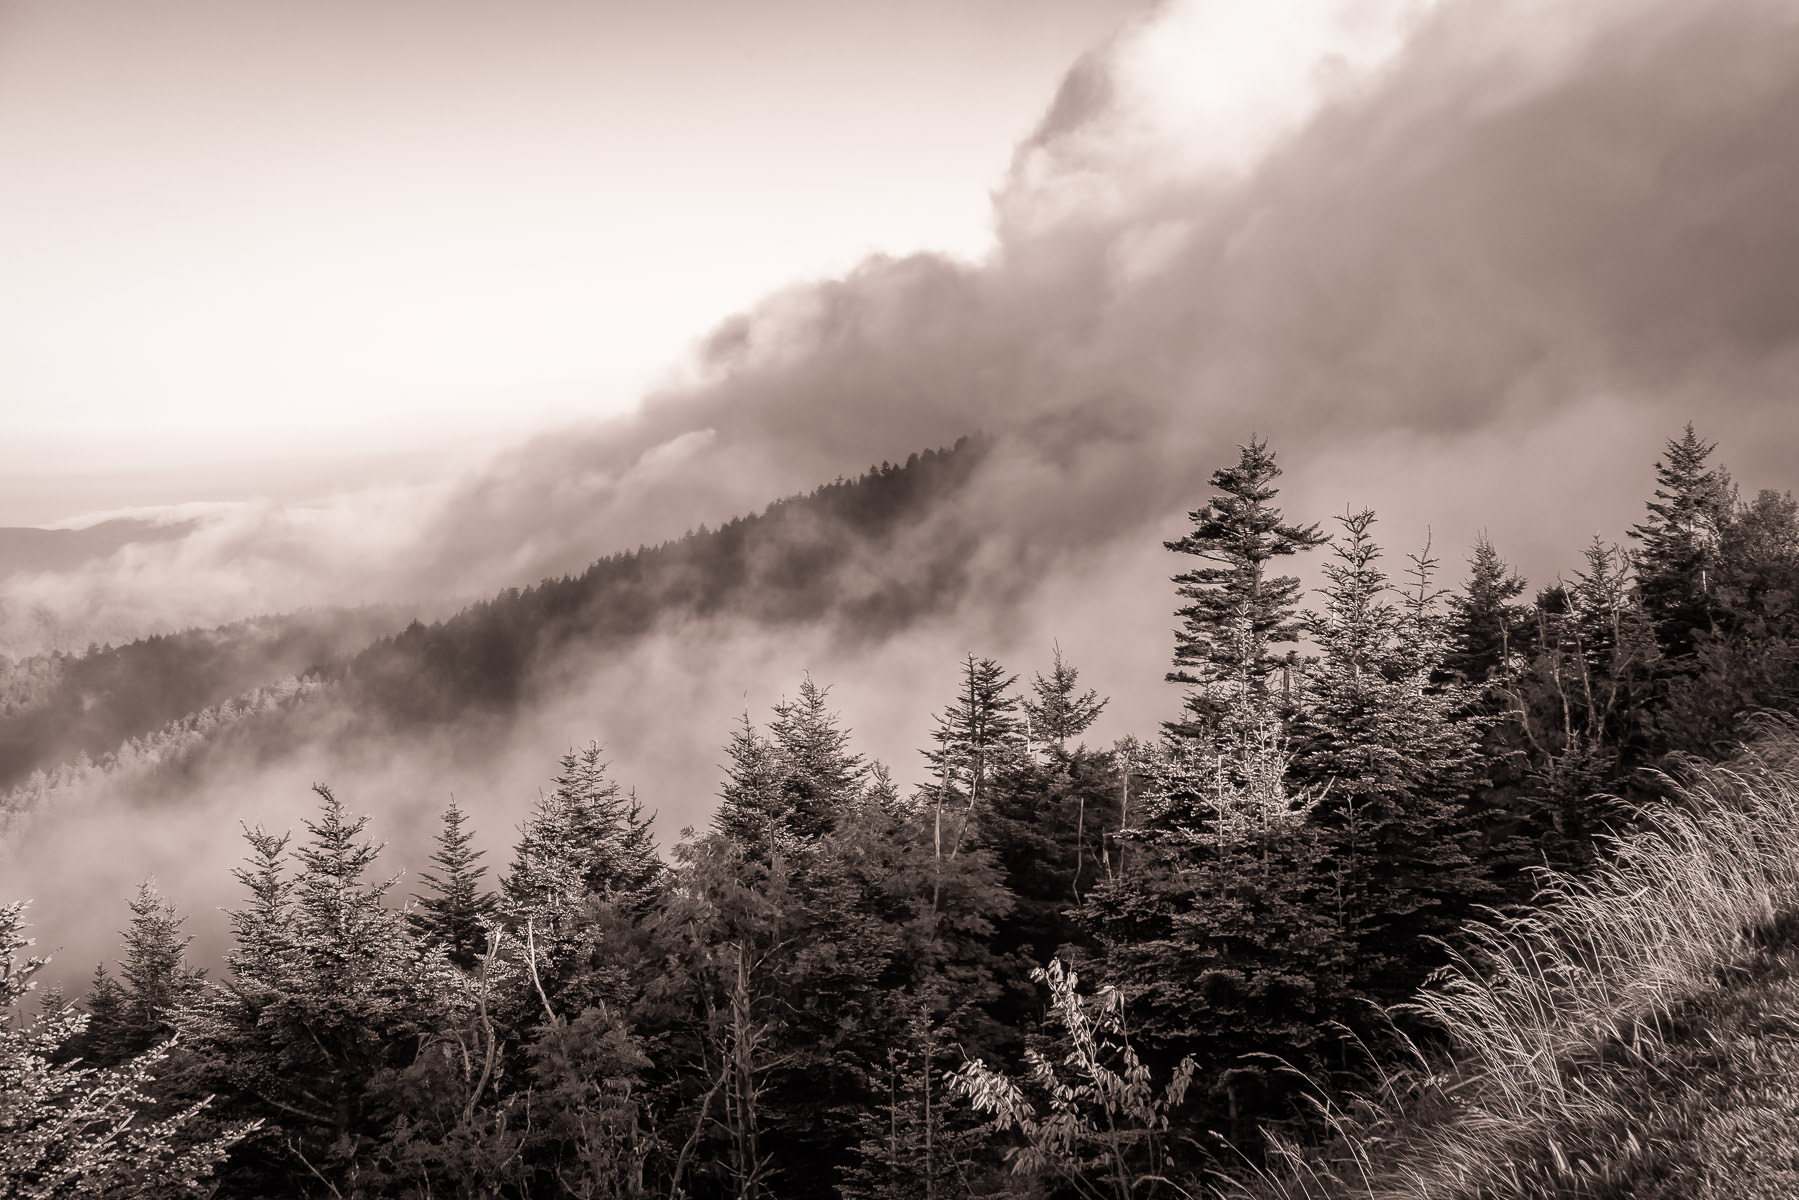 Clouds roll up the side of Clingmans Dome in the Great Smoky Mountains National Park, Tennessee.